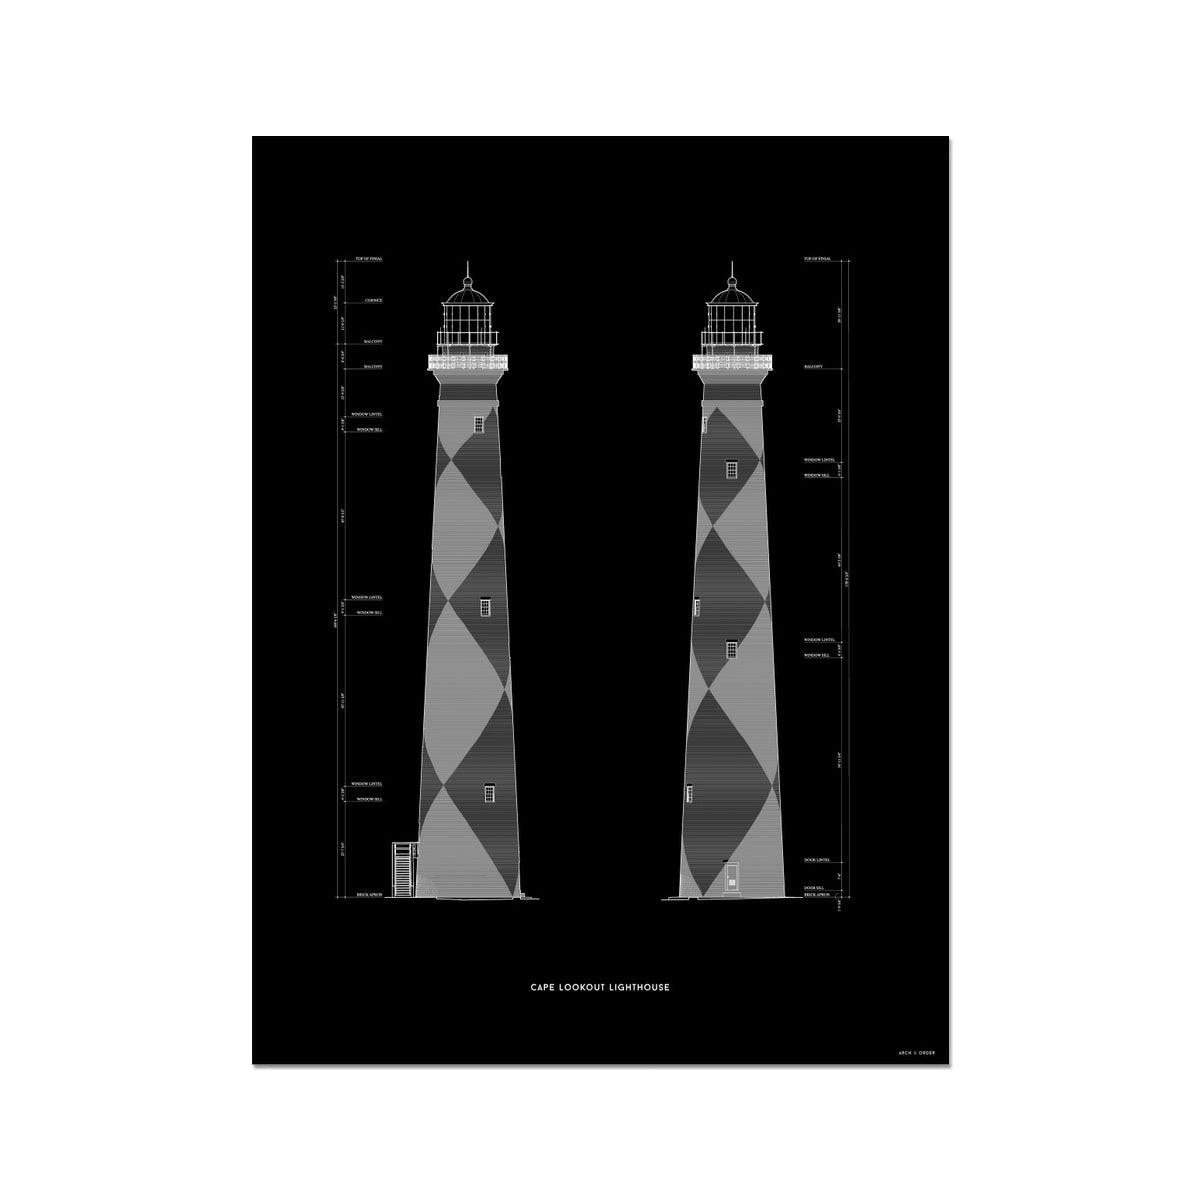 Cape Lookout Lighthouse - West and South Elevations - Black -  Etching Paper Print